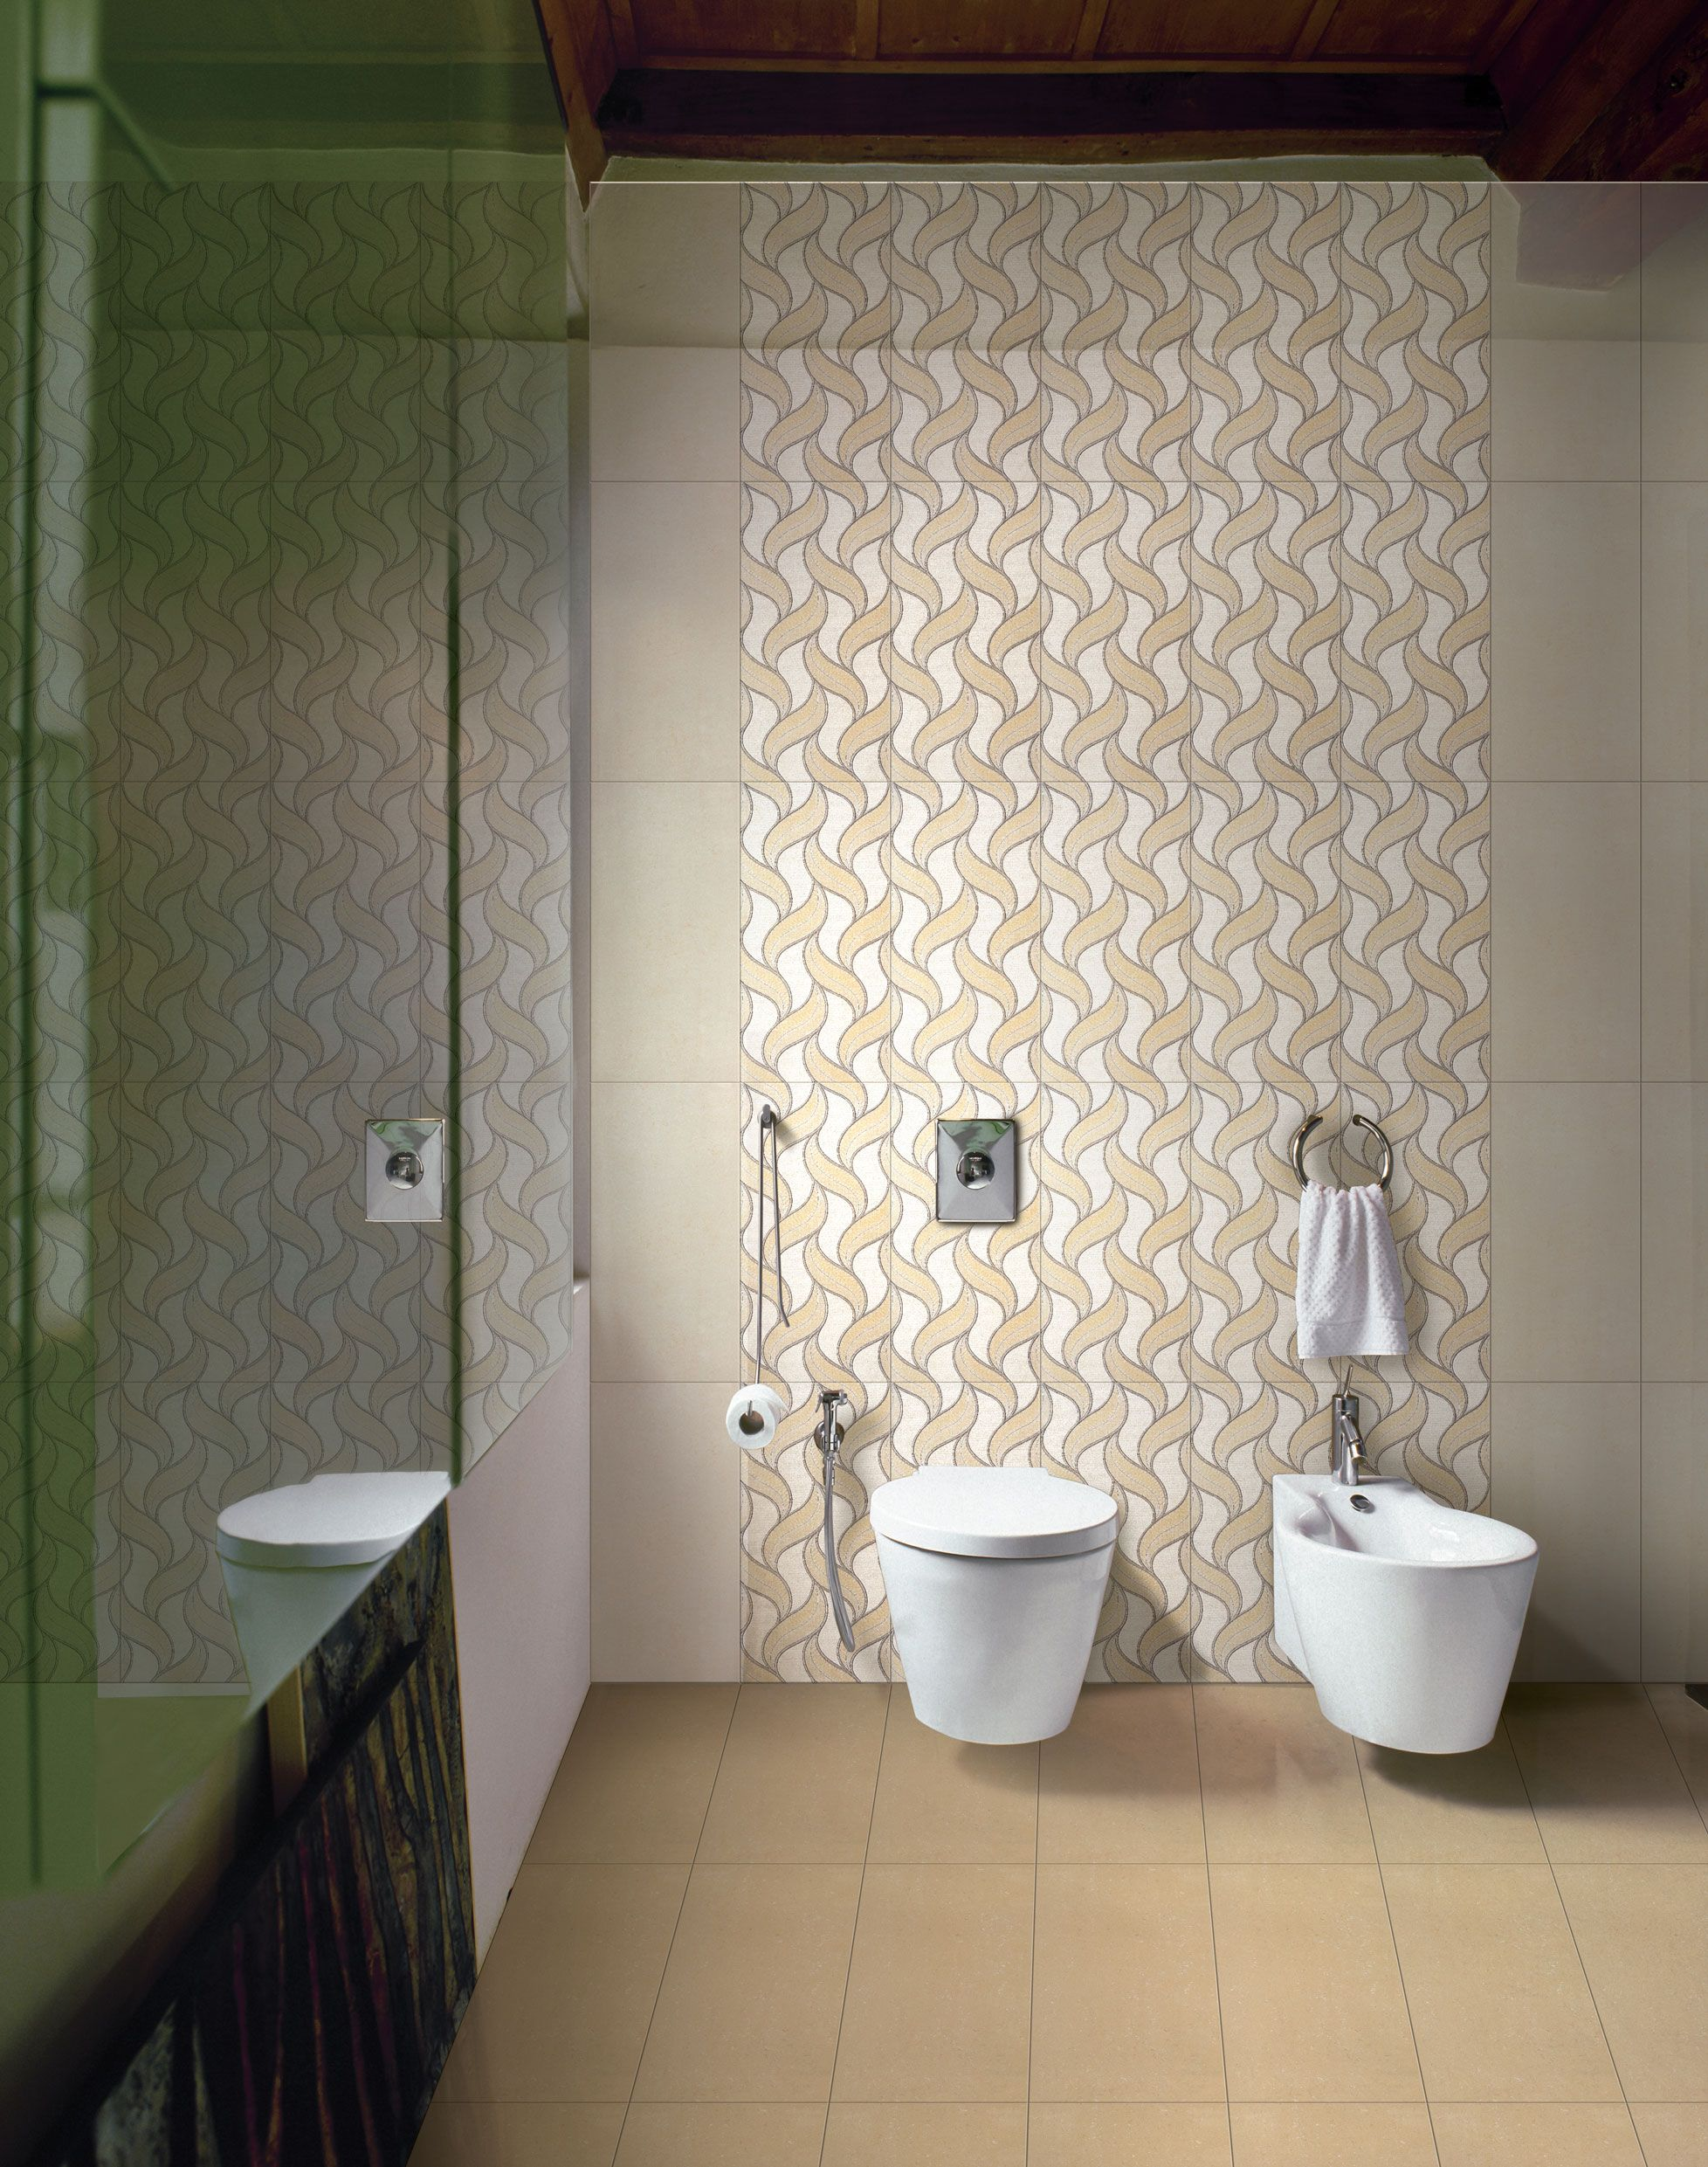 Buy Designer Floor Wall Tiles For Bathroom Bedroom Kitchen Living Room Office Vitrified